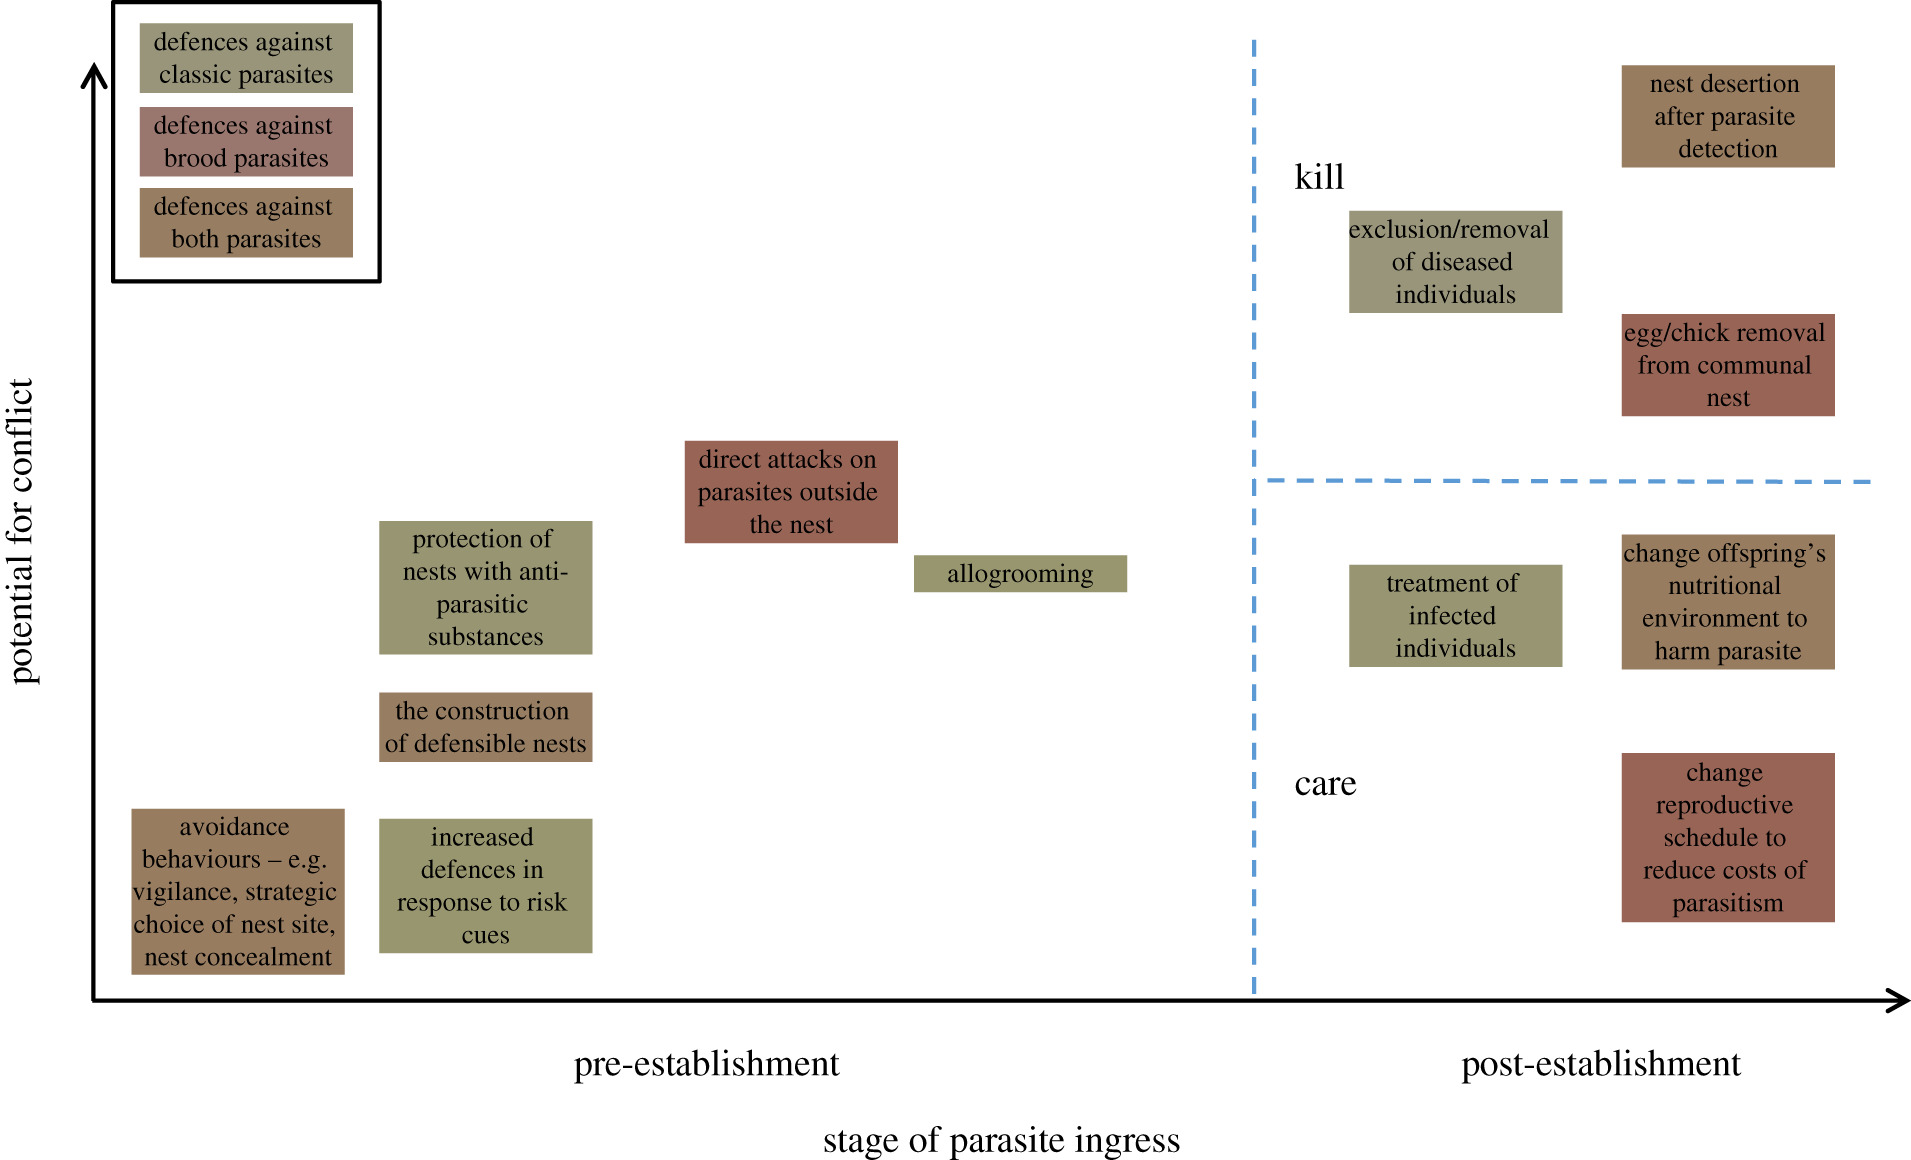 Defences against brood parasites from a social immunity